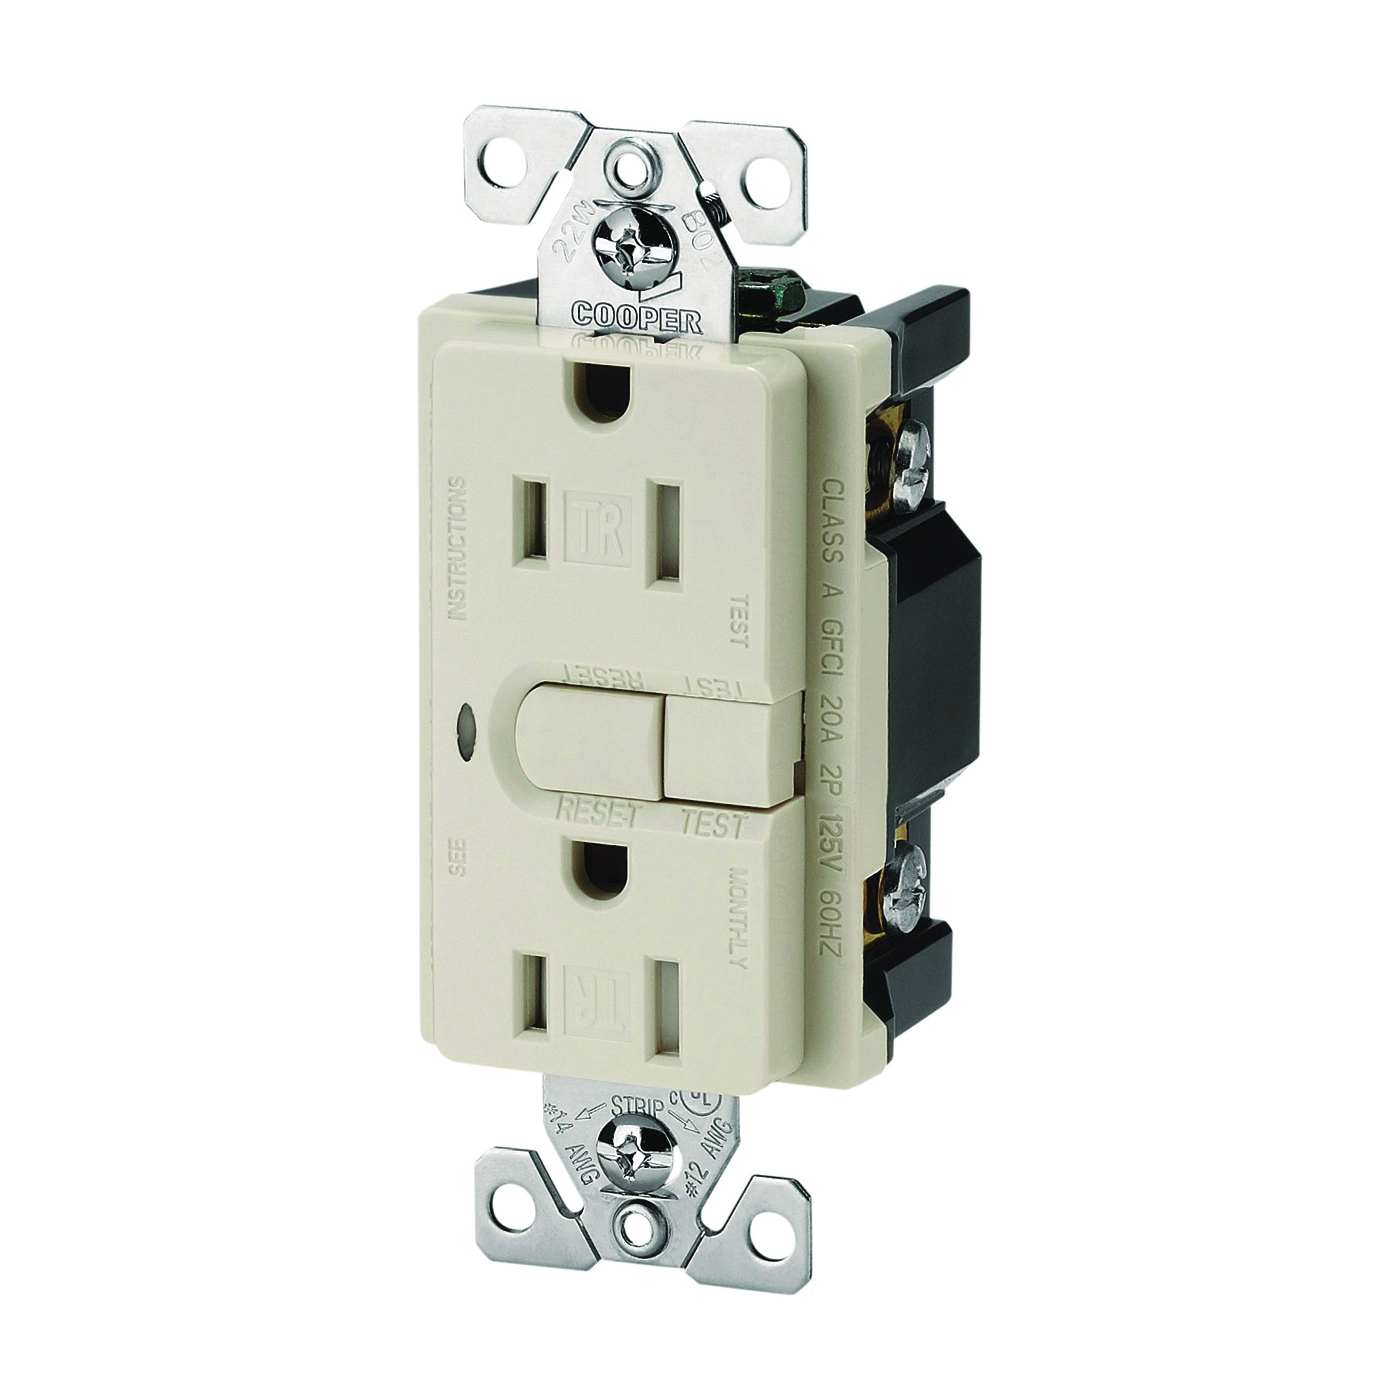 Picture of Eaton Wiring Devices 9566TRSDS Duplex GFCI Receptacle, 2-Pole, 15 A, 125 V, Back, Side Wiring, NEMA: 5-15R